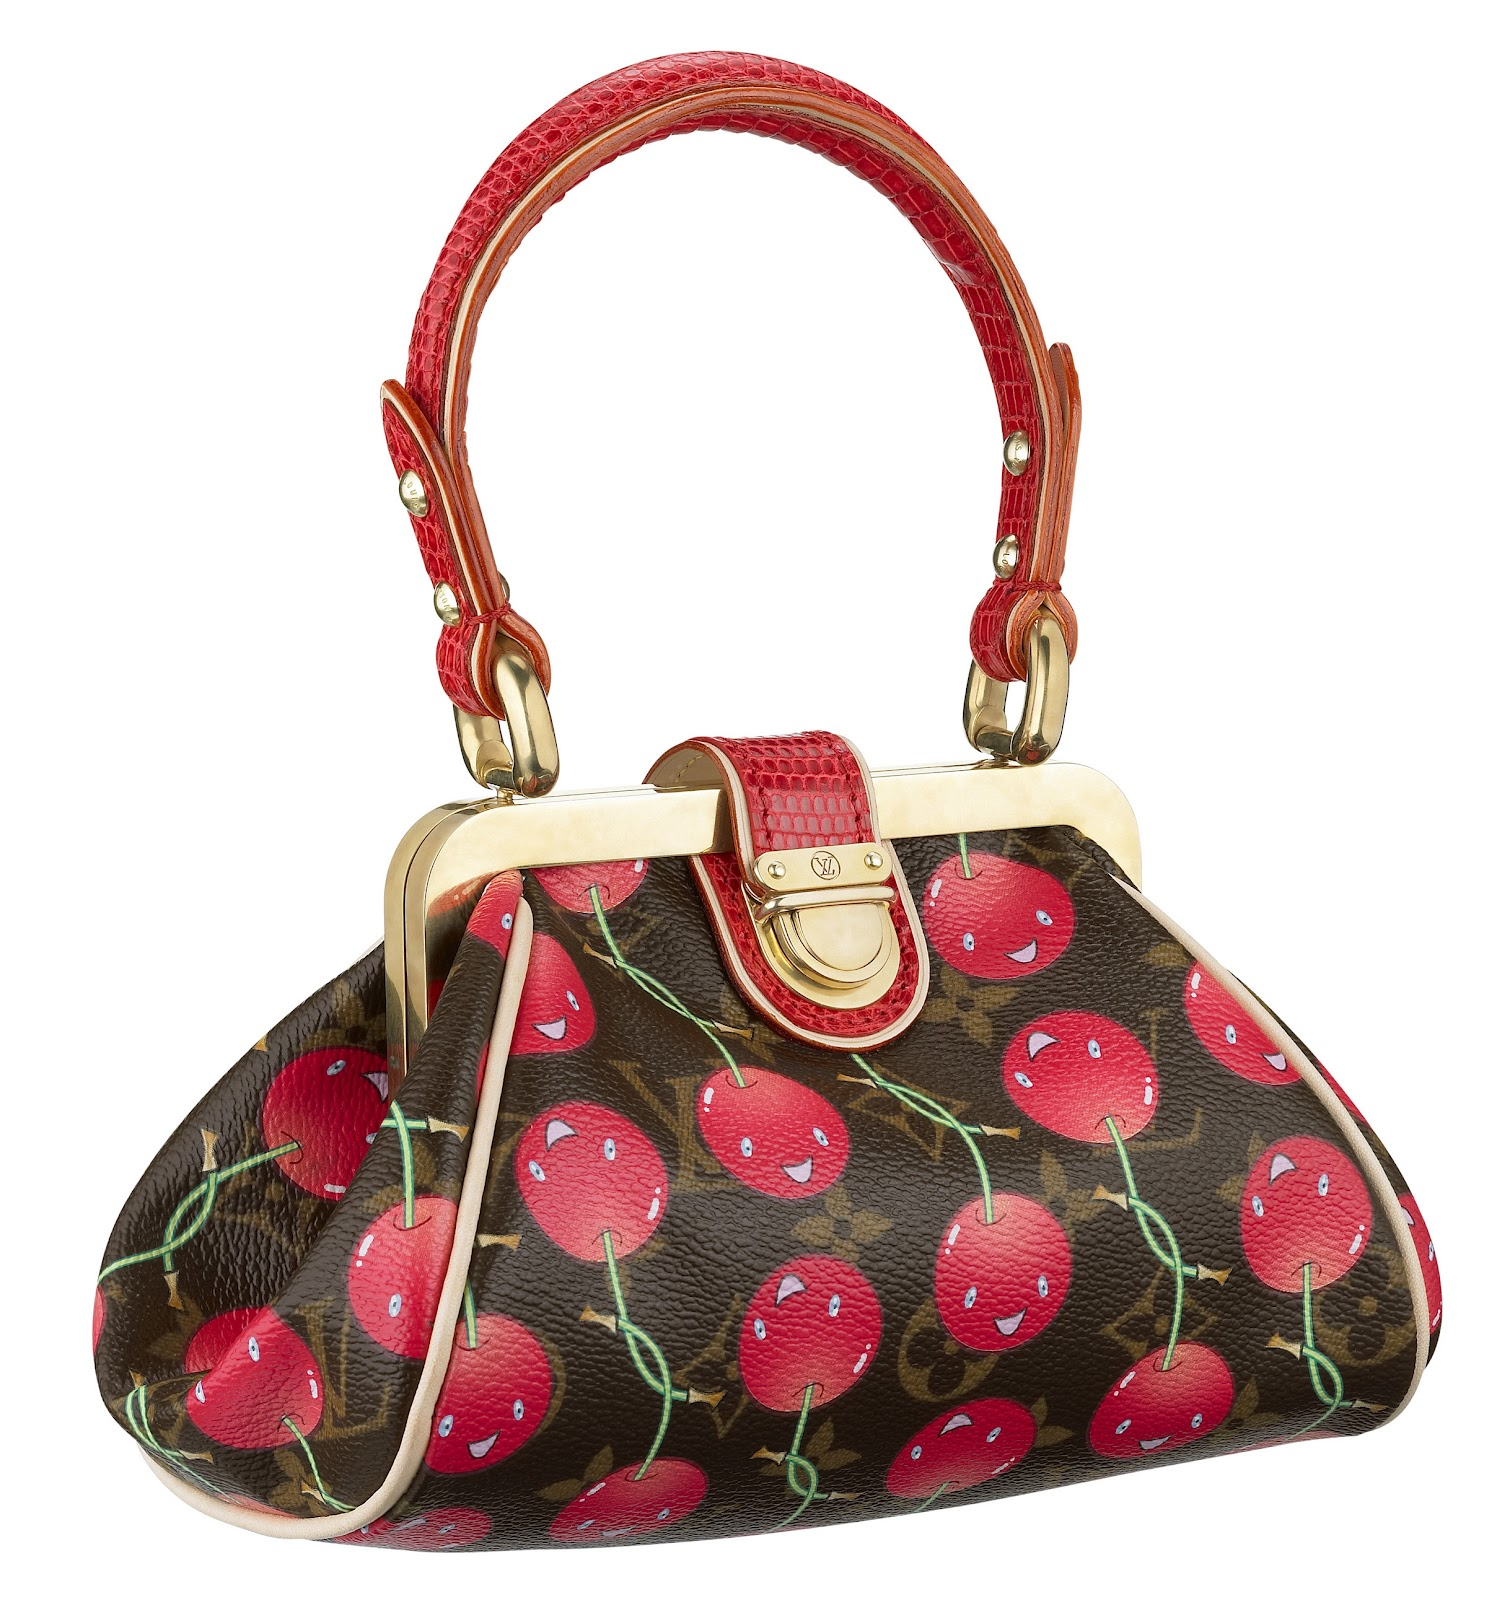 Bag In Cherries Monogram Canvas S 2005 Louis Vuitton Collection